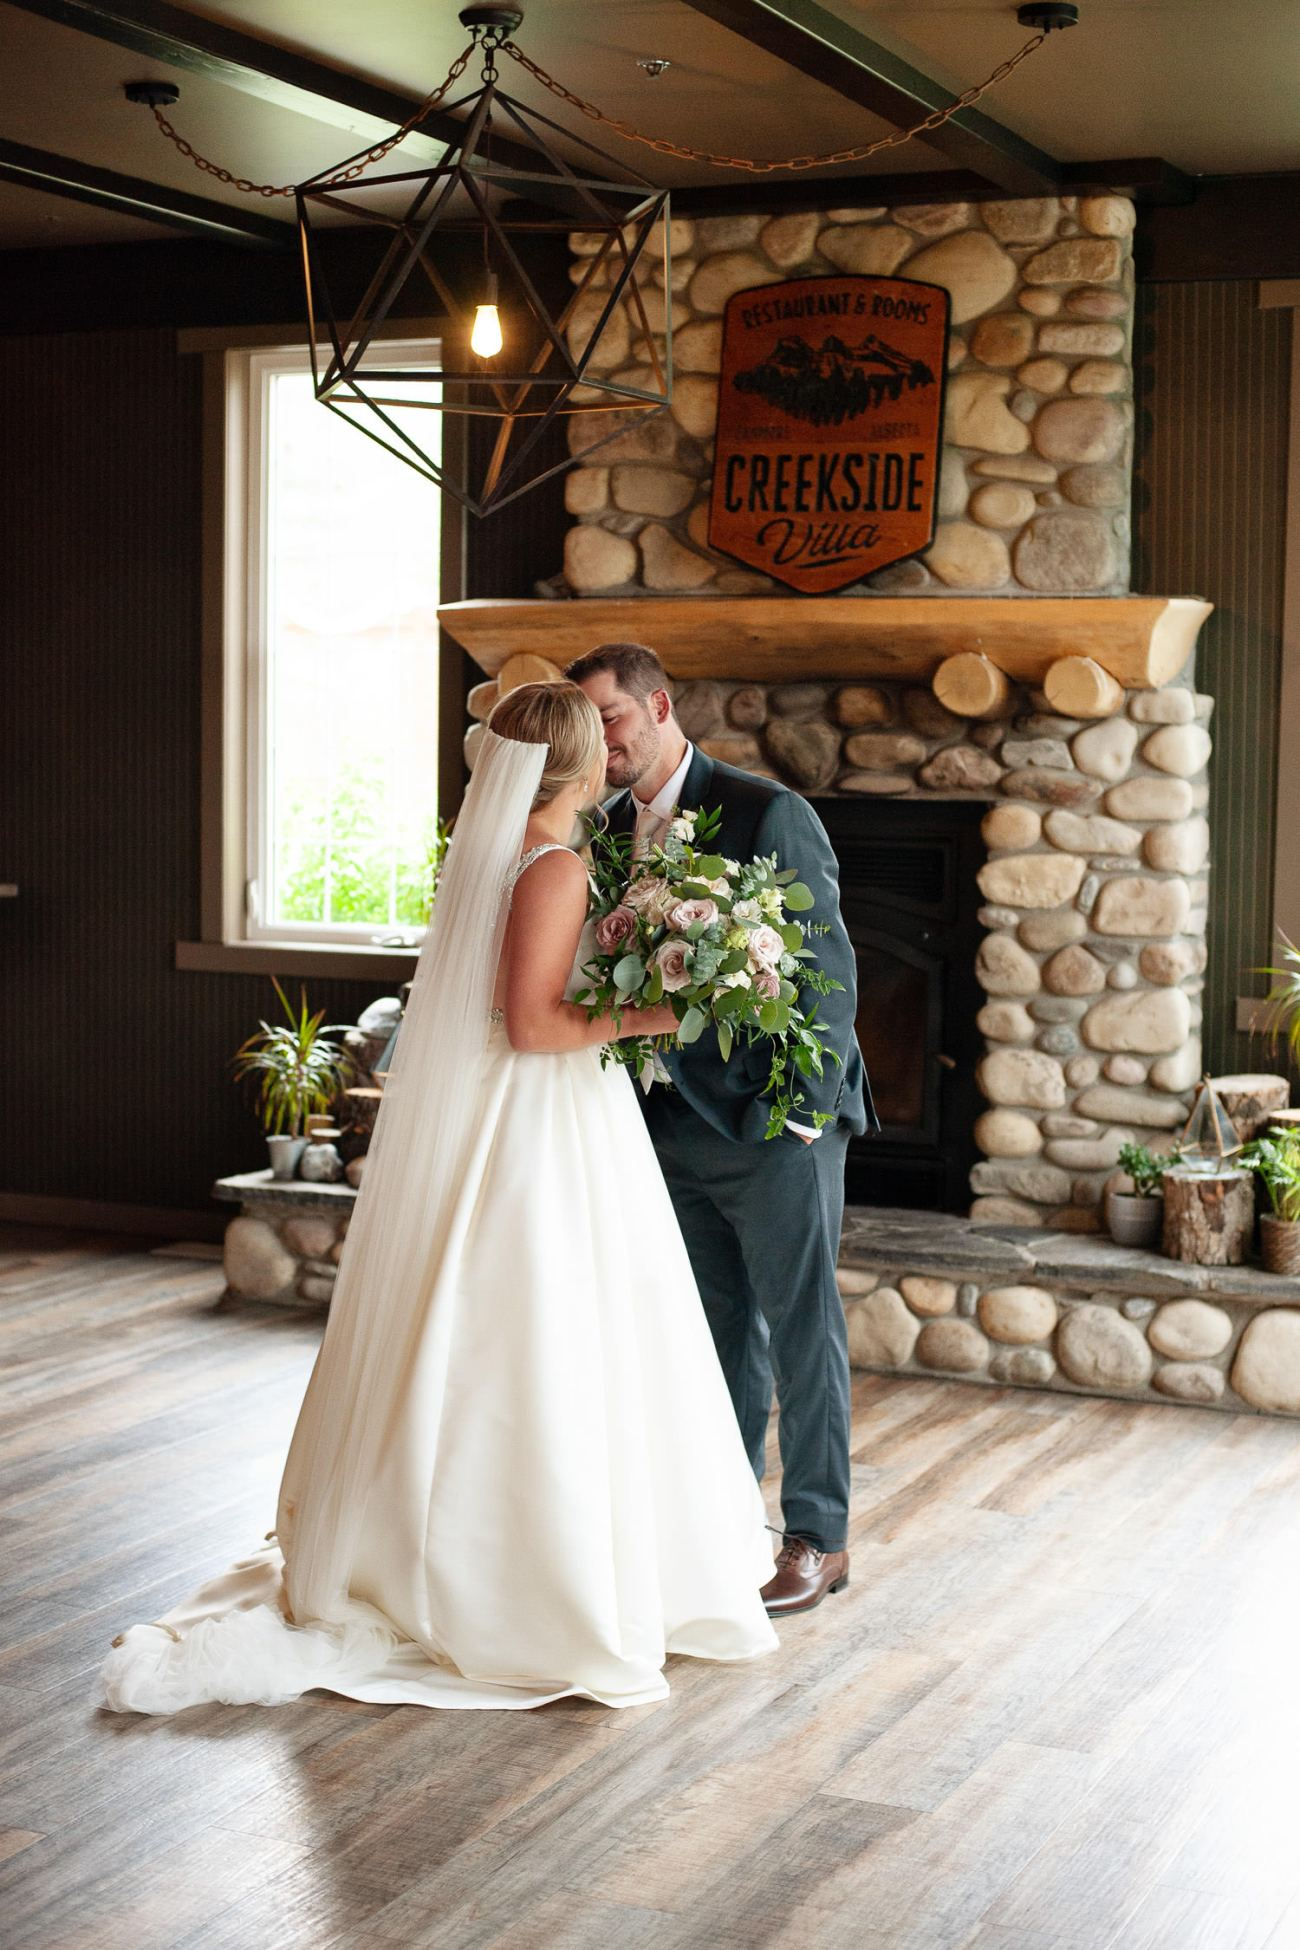 Bride and groom kiss during first look at Creekside Villa wedding captured by Tara Whittaker Photography